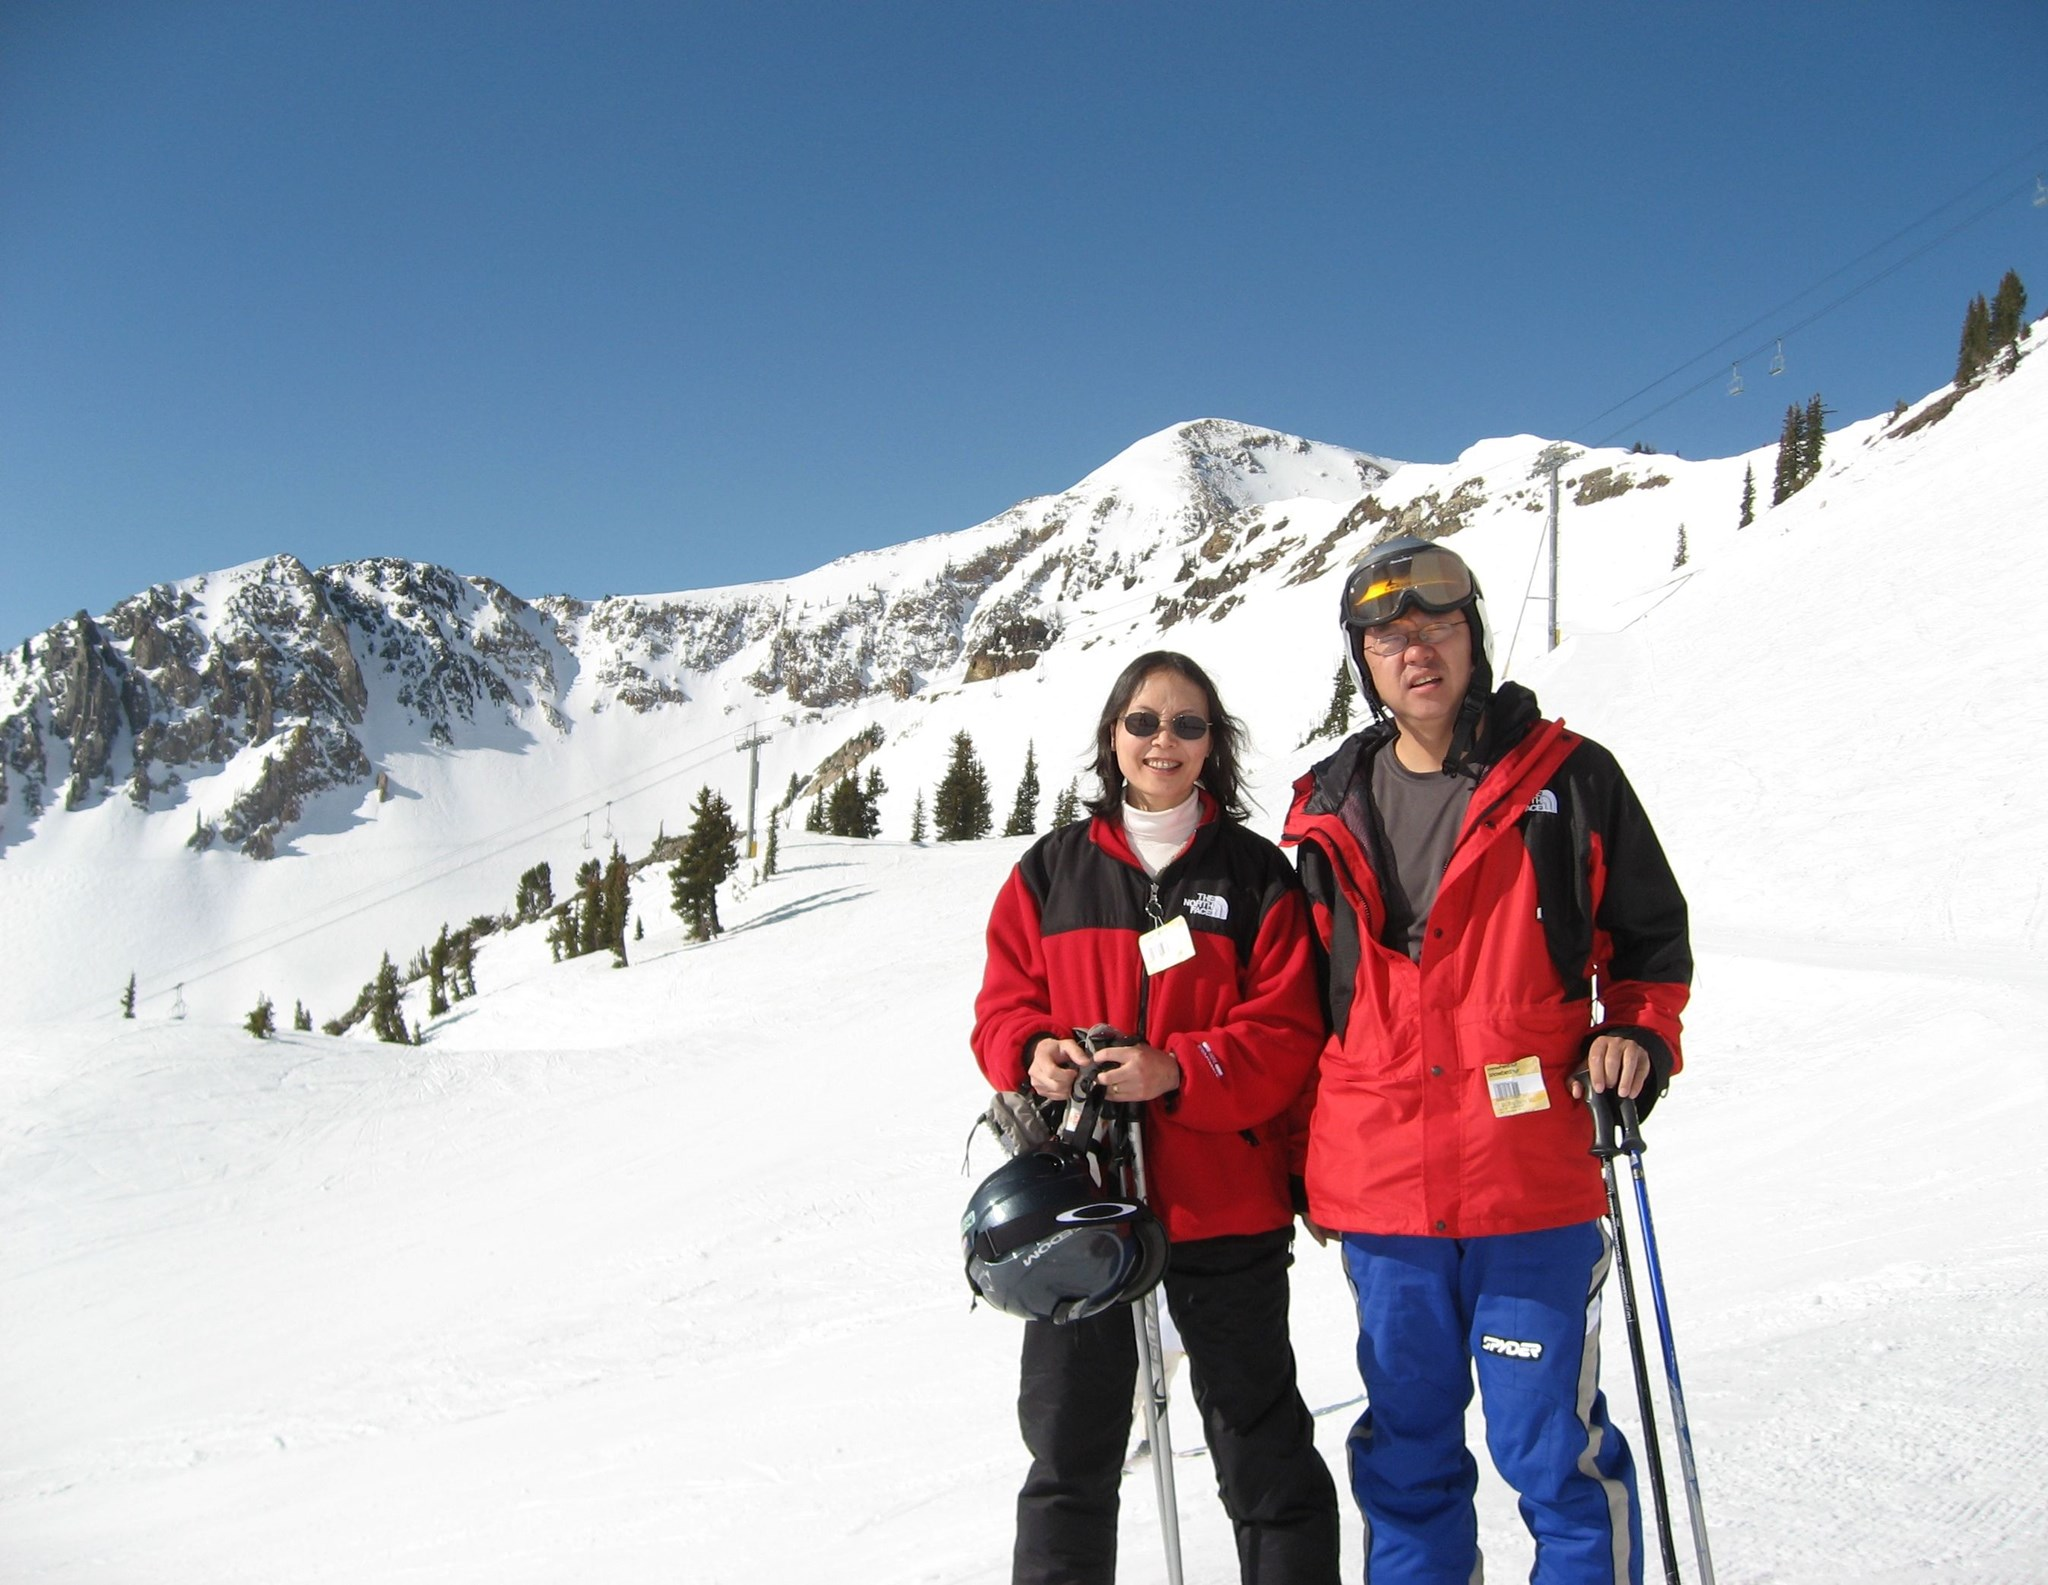 Wenbo skiing with his wife